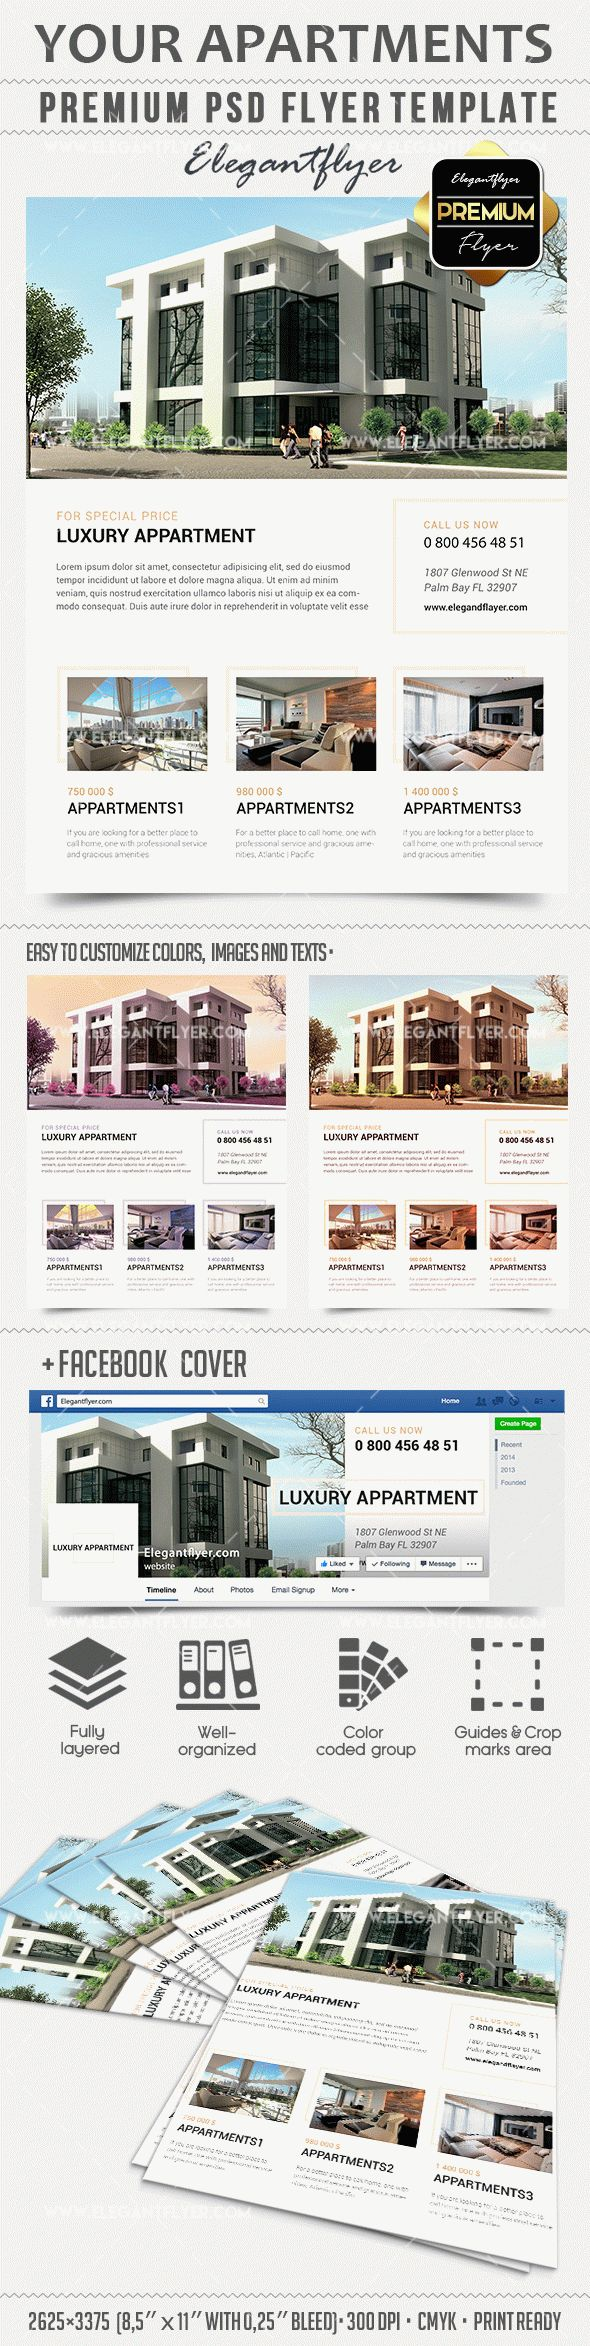 your apartments premium psd template facebook cover by your apartments premium psd template facebook cover